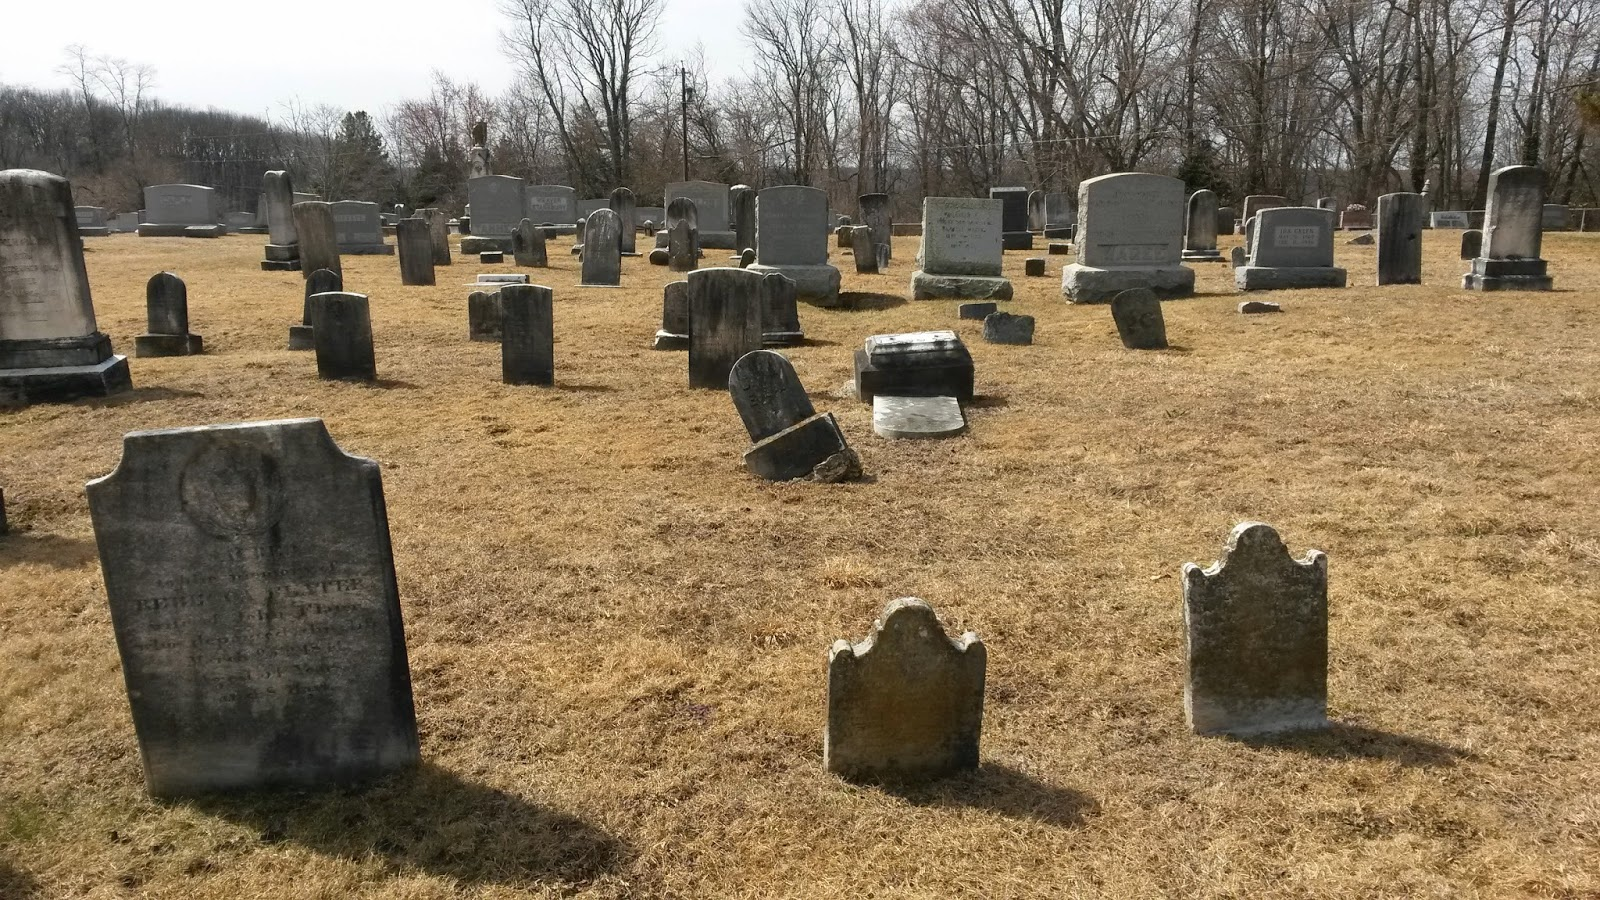 Daughter of the jaded era: Goth bloggers visiting the grave